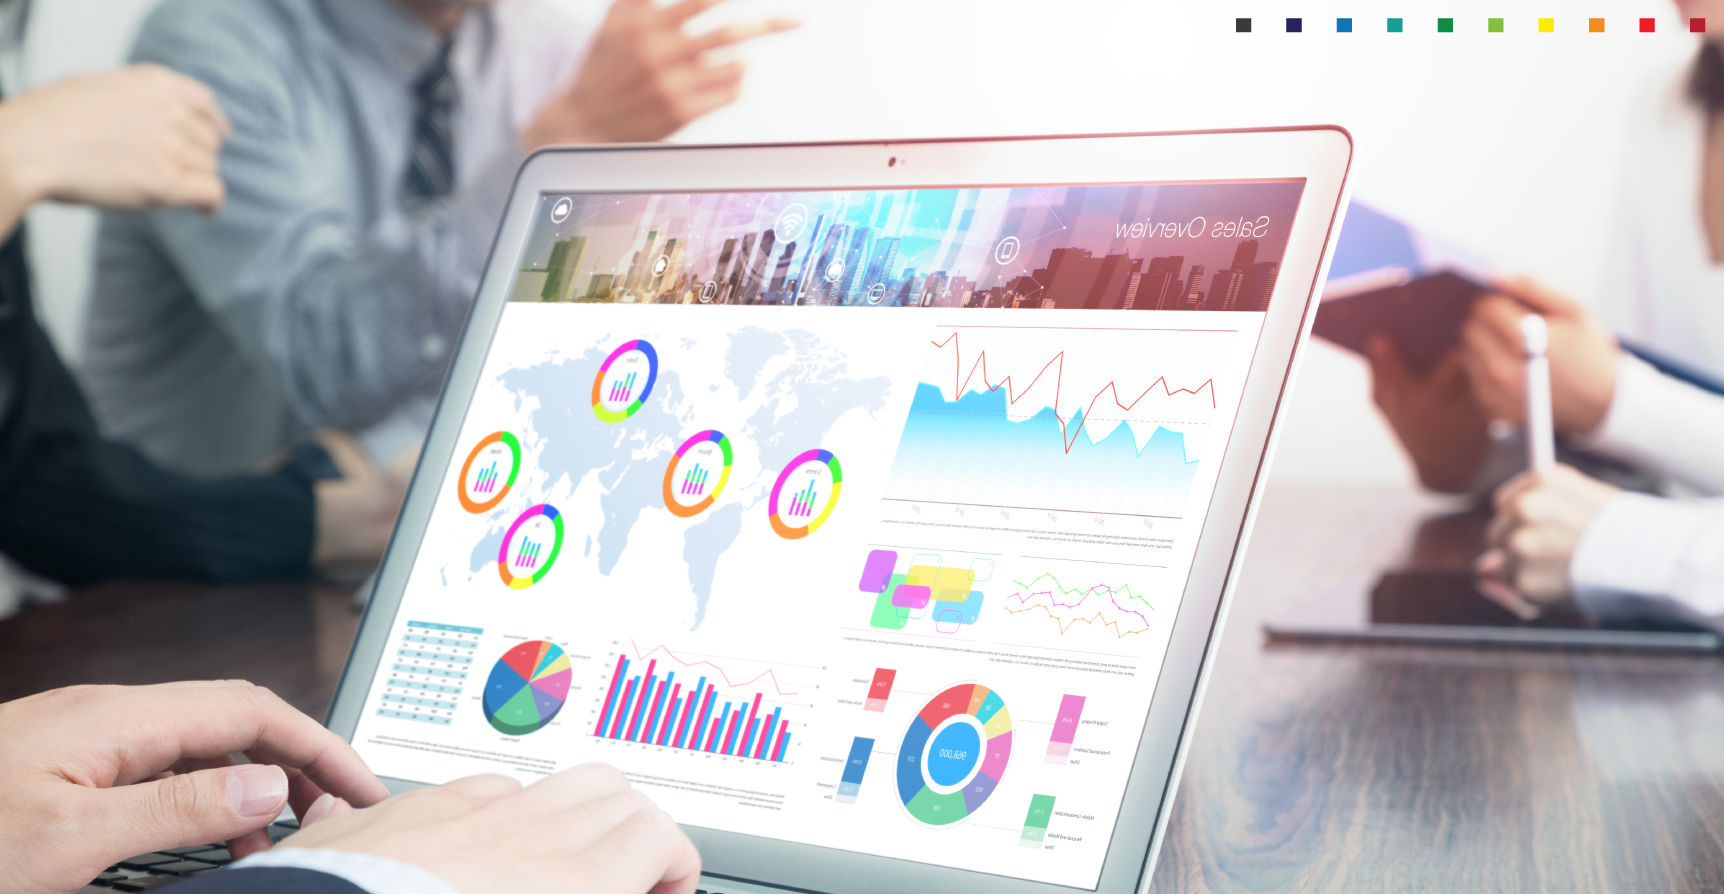 How does business intelligence software work